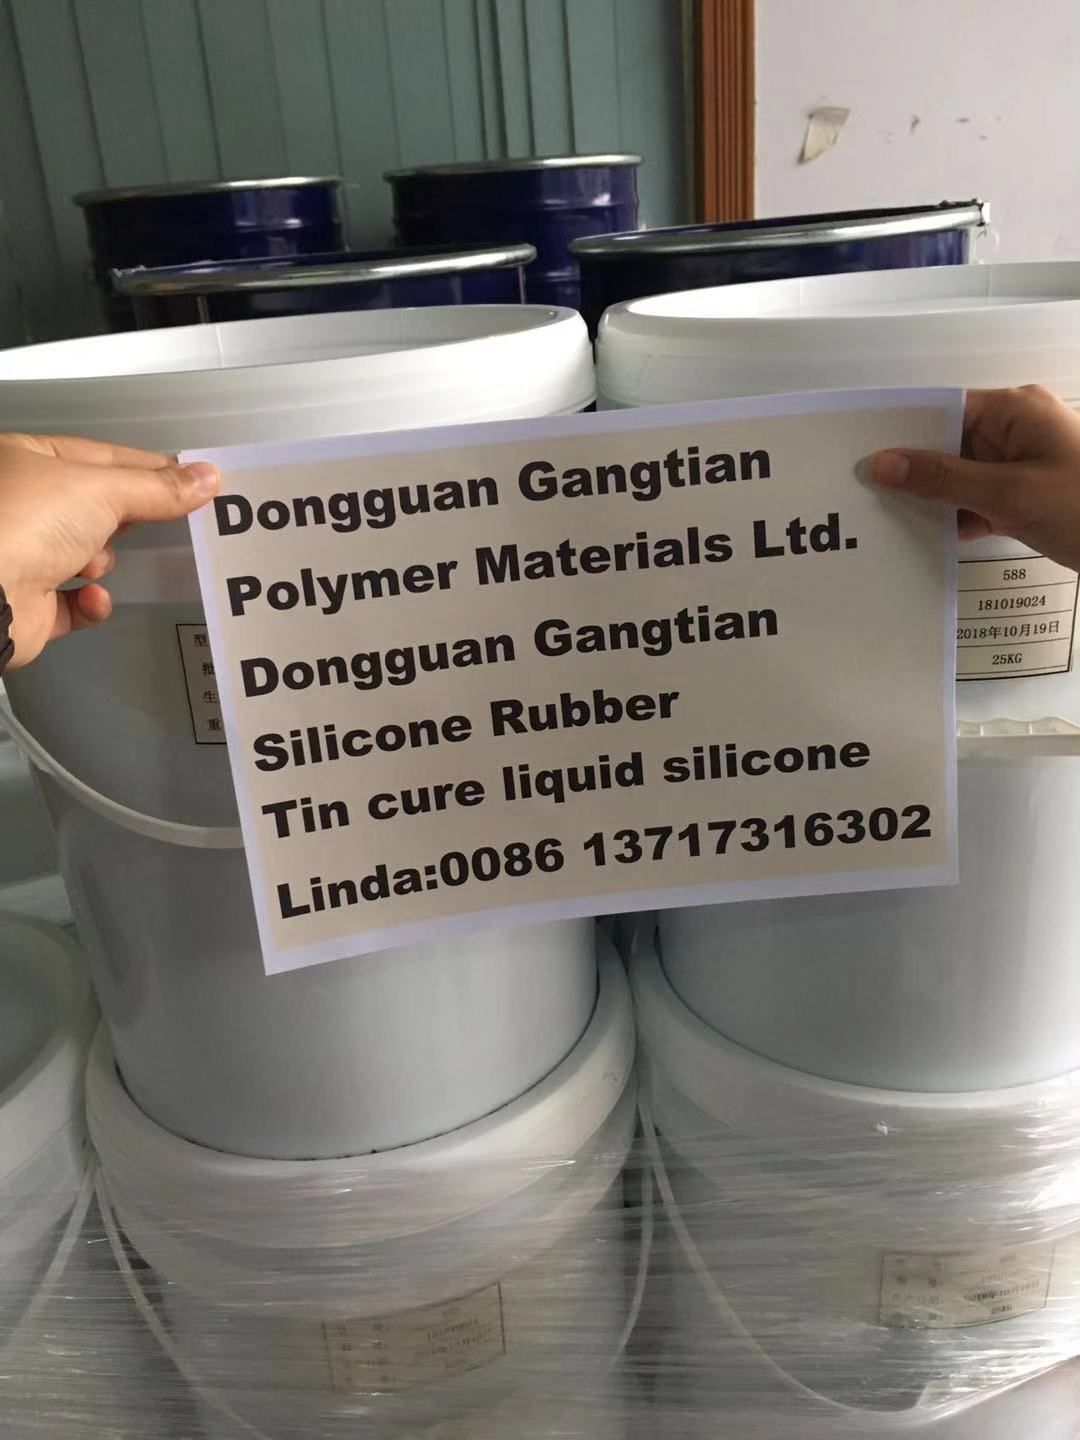 Silicone Rubber For Plaster Casting Cornice Mold Gypsum Statues Mould Making View Silicone Rubber For Gypsum Rtv Silicone Rubber Mold Making Cornice Moulding